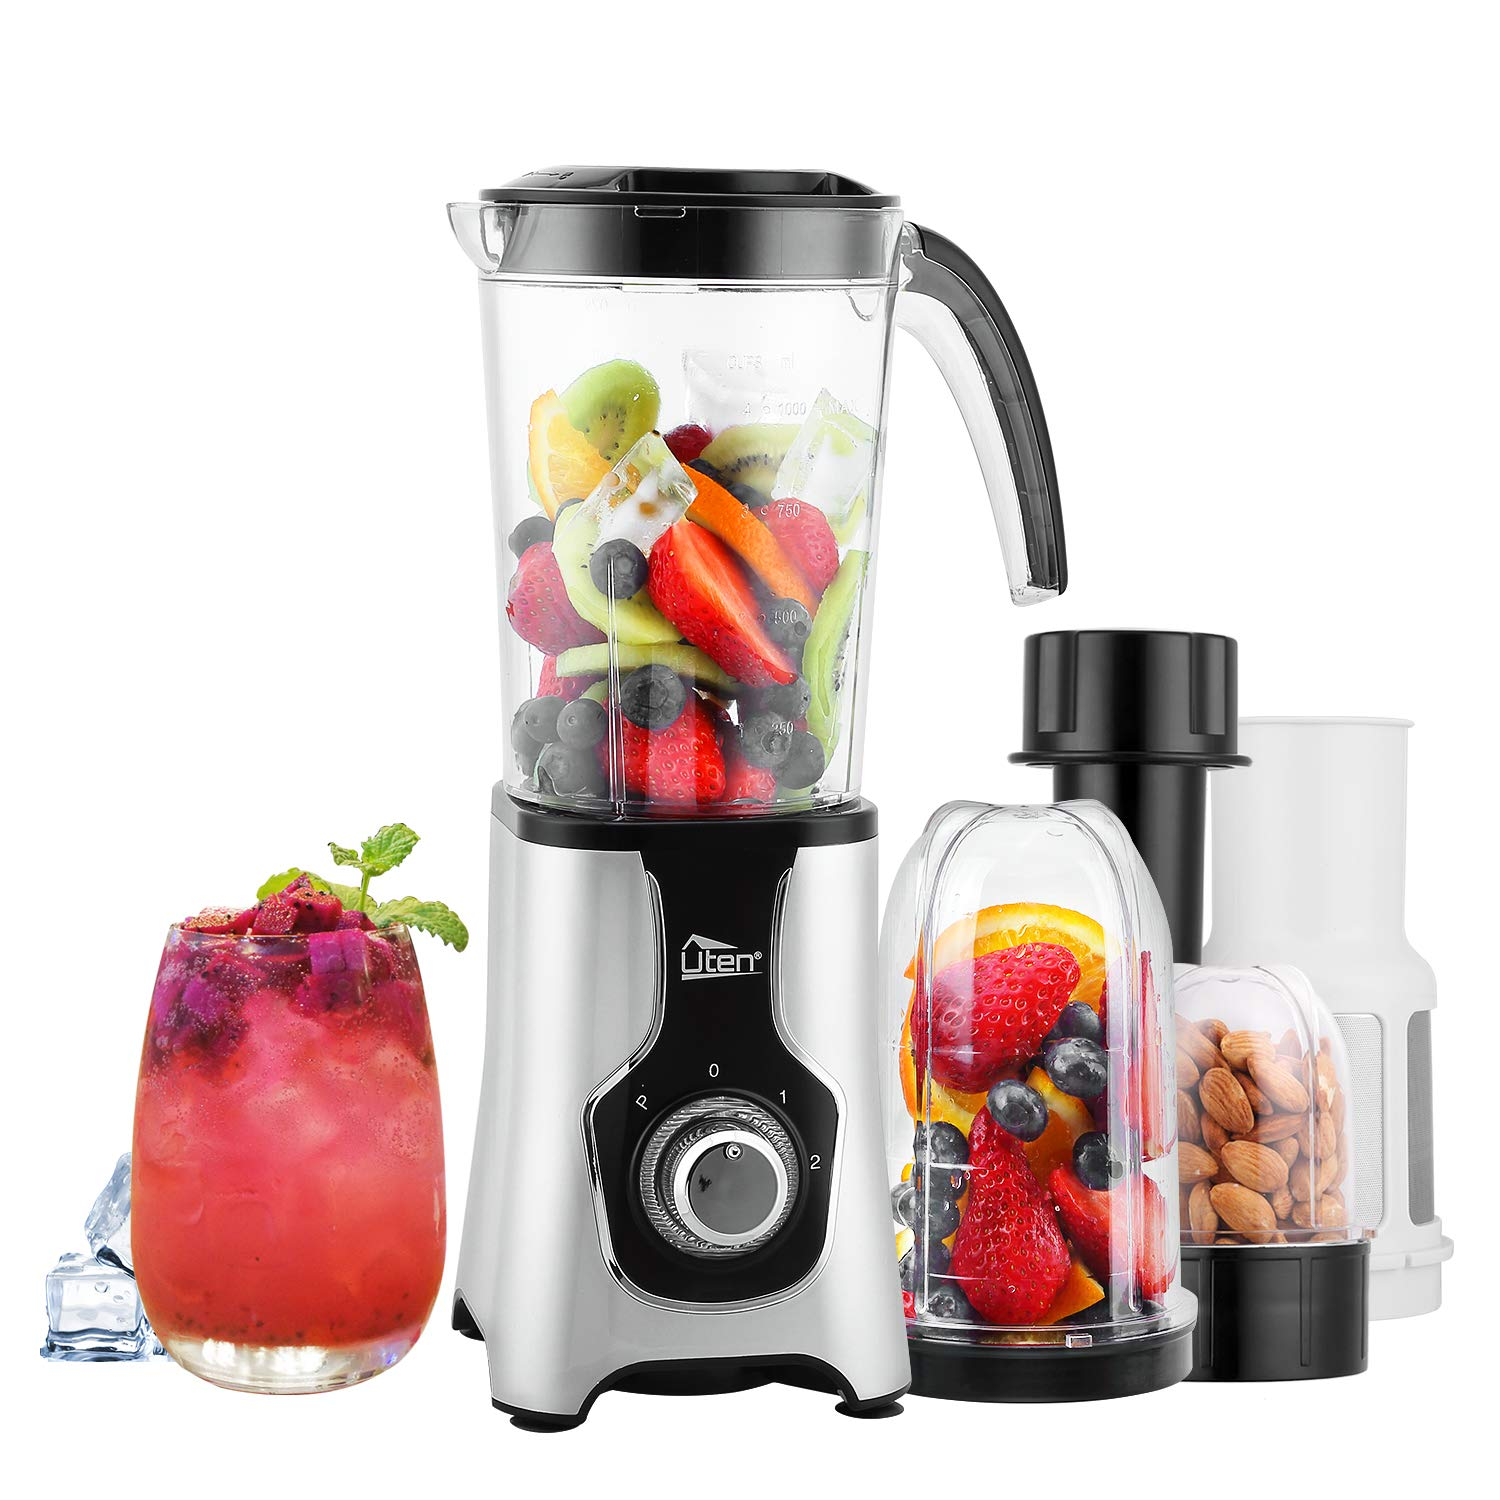 Uten Blender, Multi-functional Smoothie Maker and Mixer for Juicers Fruit Vegetable 220W Automatic Blender Ice Crusher